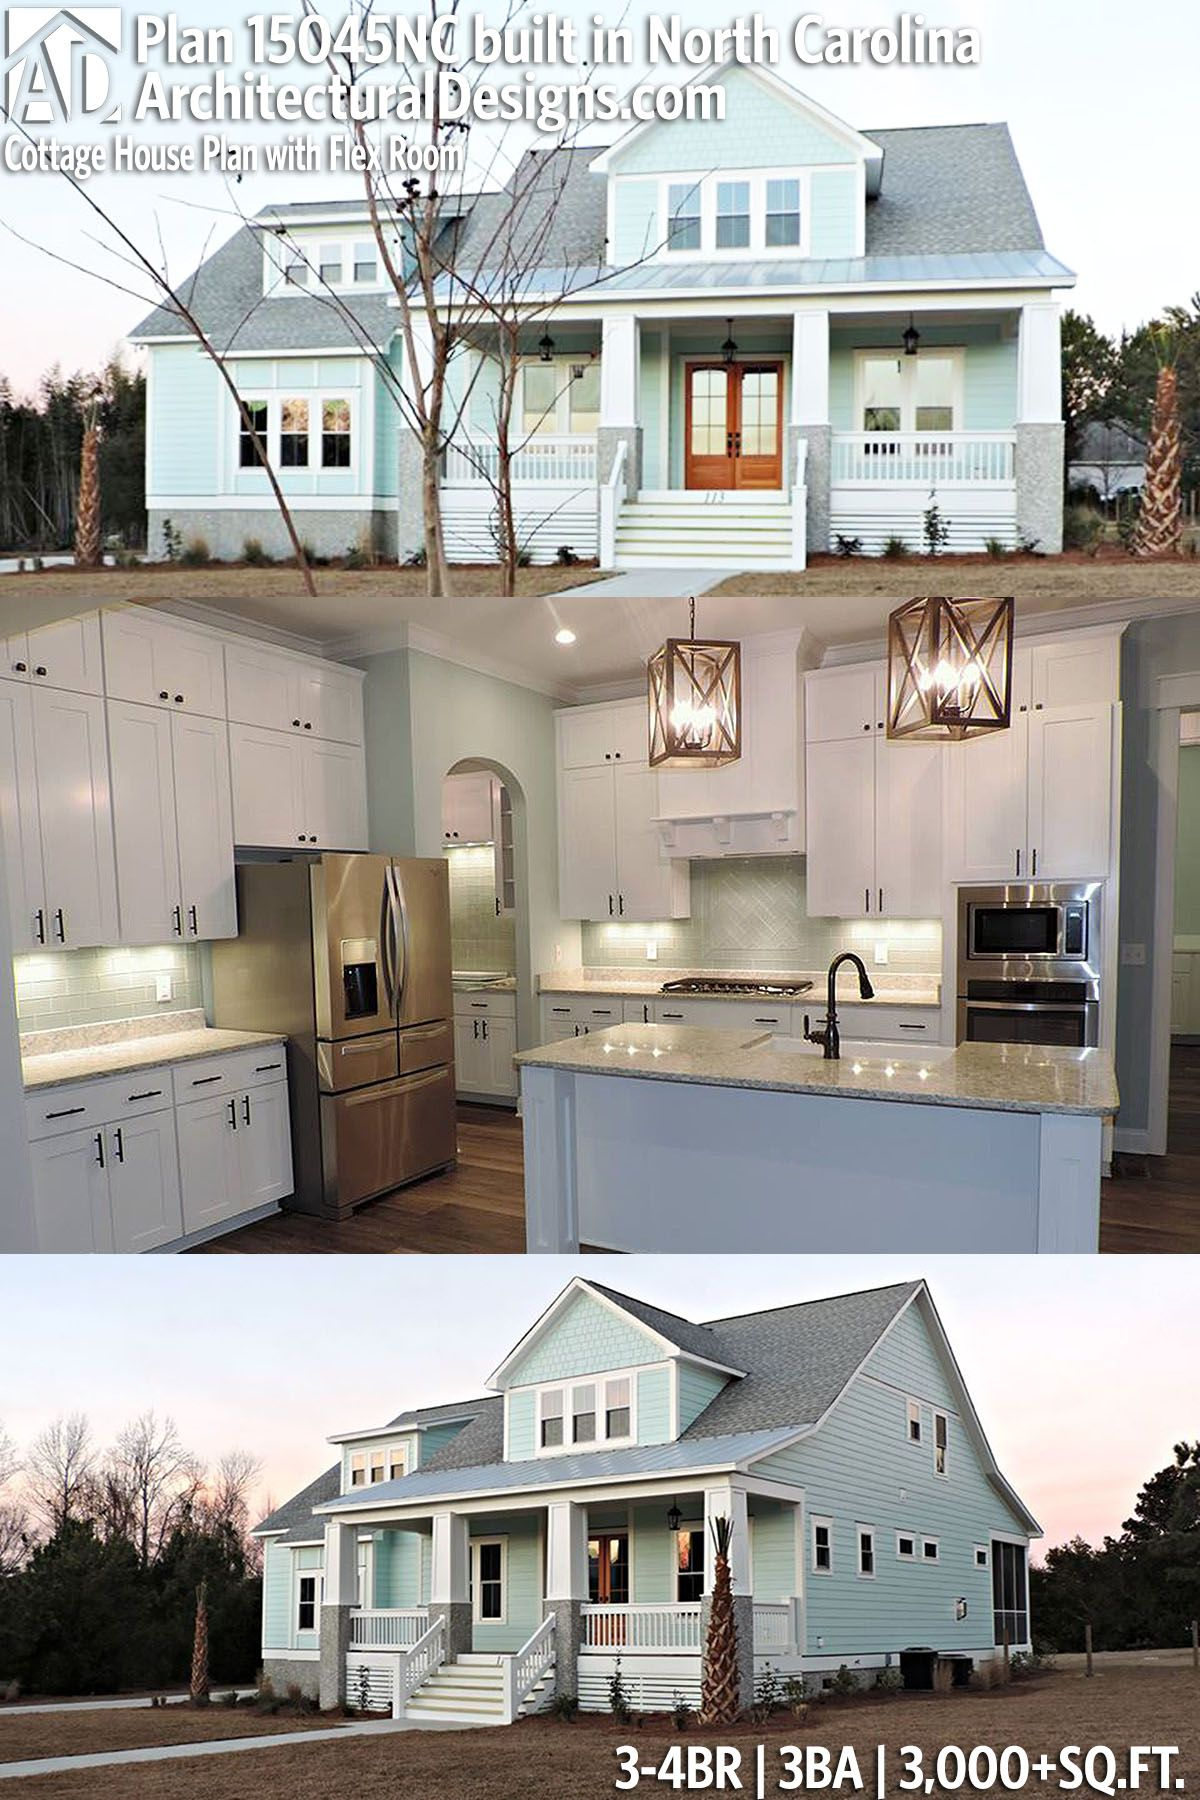 Architectural designs house plan nc built by thornton builders in north carolina br and sq ft ready when you are also cottage with flex room plans rh pinterest